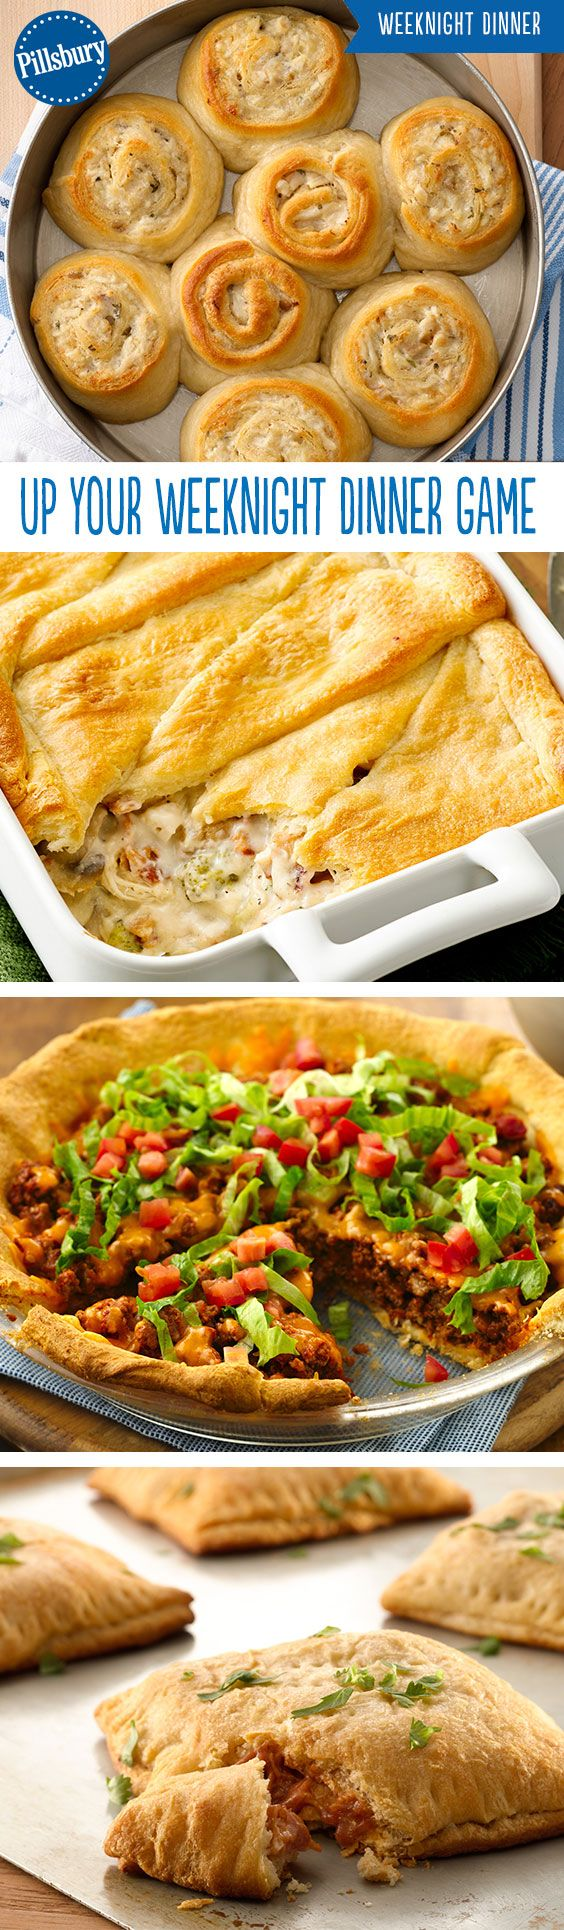 Dinners the whole family will love! From tacos to chicken to pasta the entire family is going to want seconds. All of these recipes are super easy for those busy weeknights.